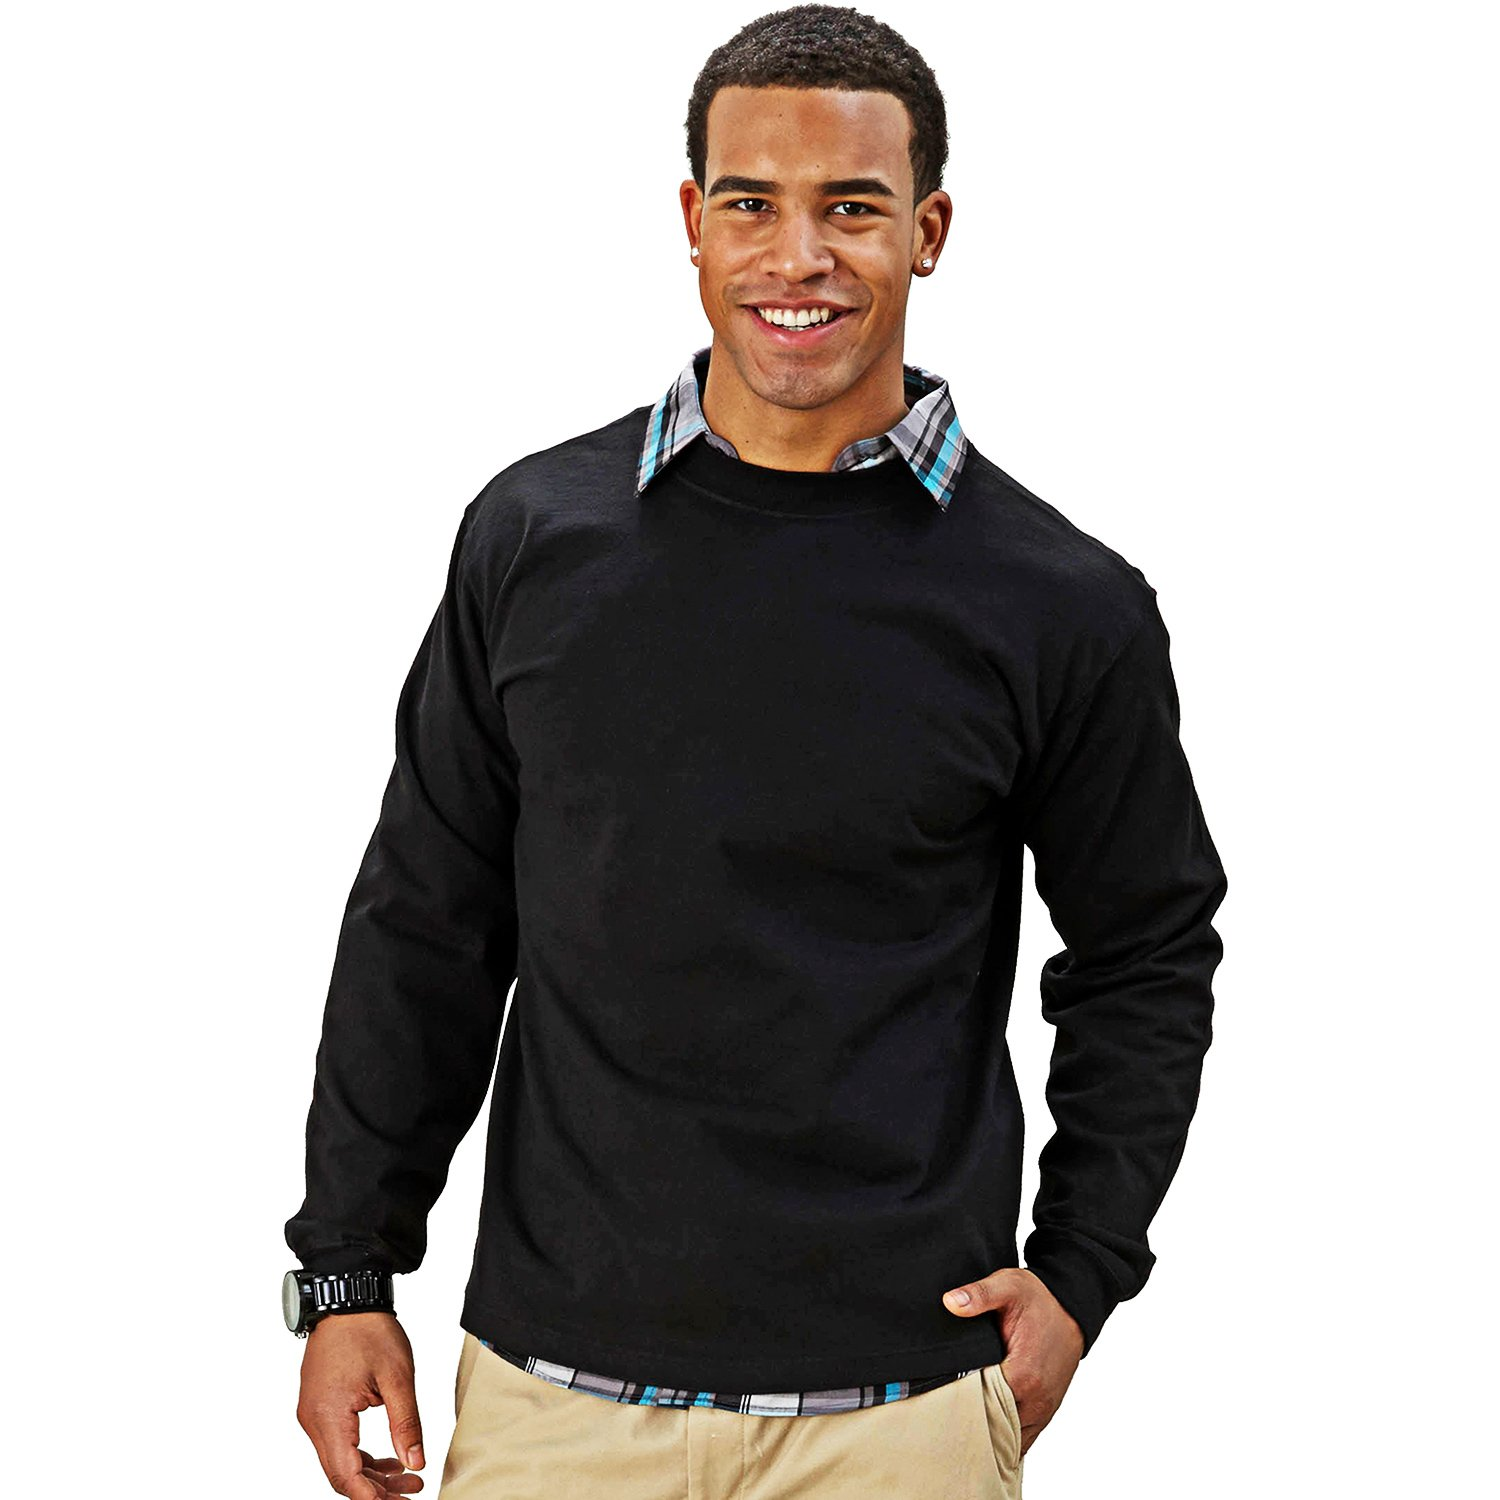 Goodwear Adult Long Sleeve Crew Neck Classic Fit